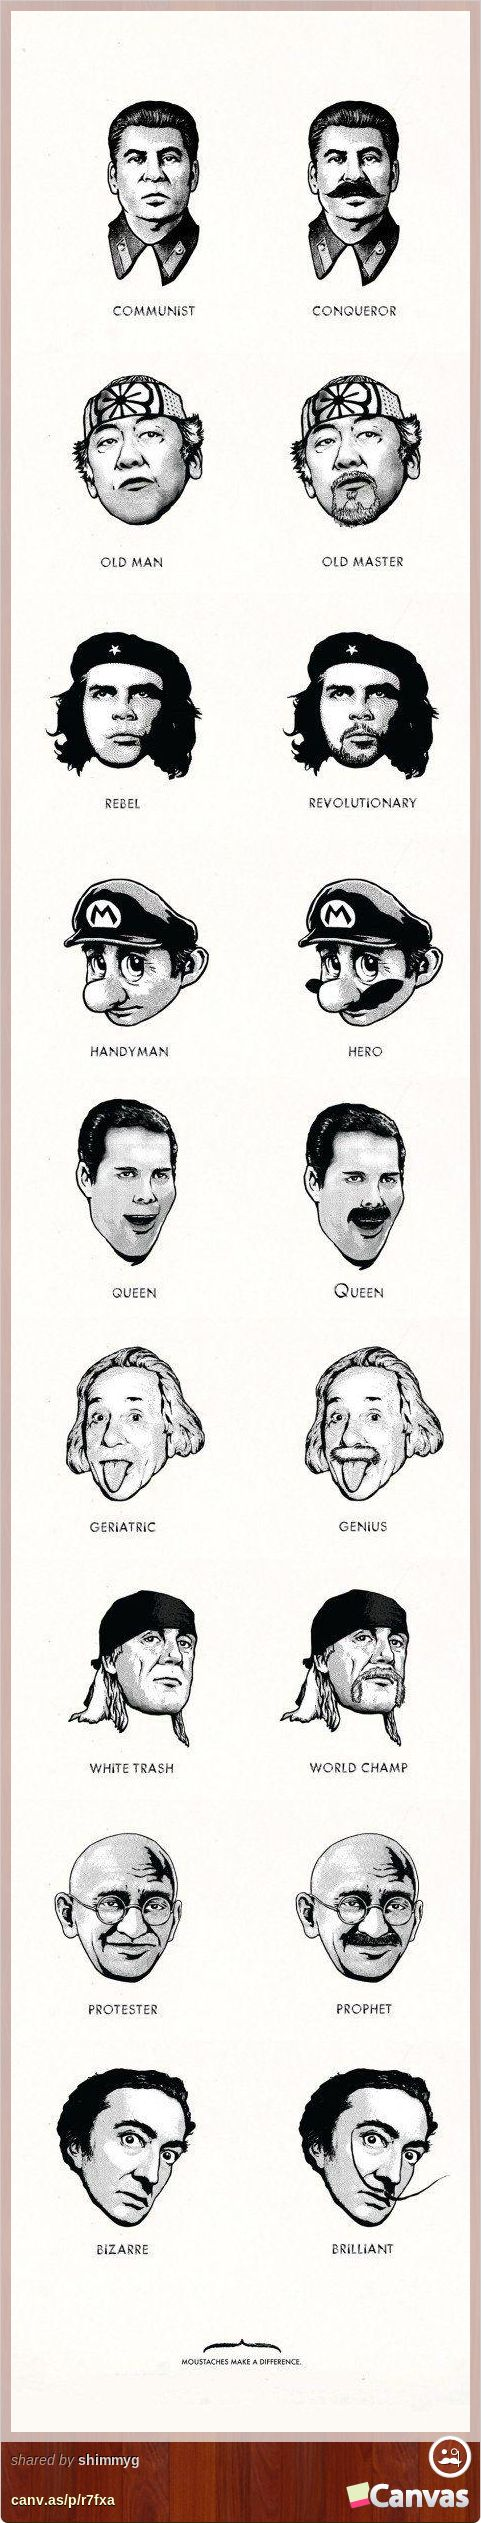 Nerd fashion: mustaches make a difference: Mustaches Change, Mustaches Rule, Difference Moustaches, Make A Difference, Epic Beards Mustaches, Mustache Power, Moustaches Change, Facial Hair, Moustaches Isn T